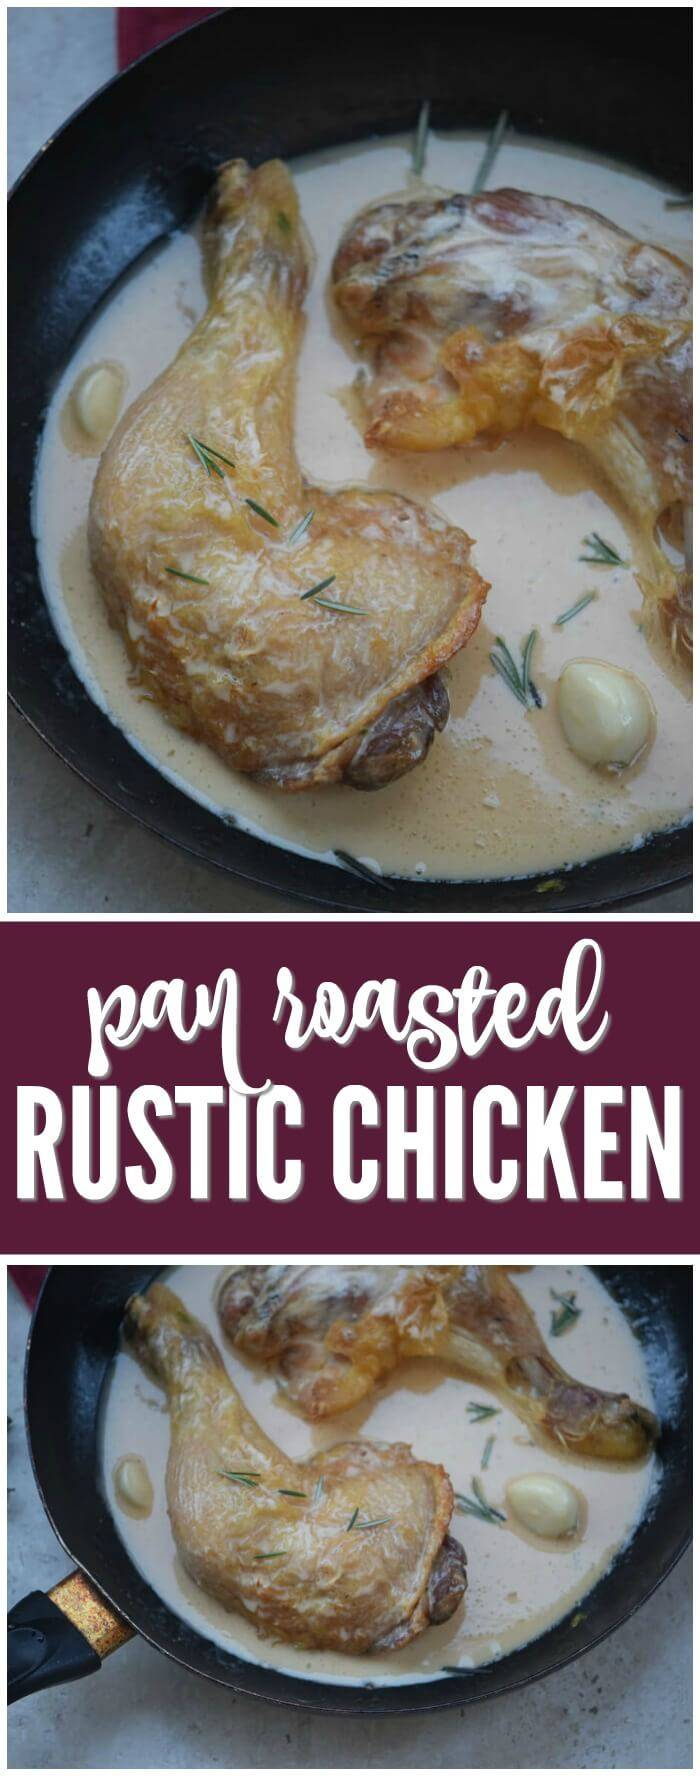 Rustic Pan Roasted Chicken! A family favorite meal idea for dinner. One of our homemade favorite meal ideas that is kid friendly!